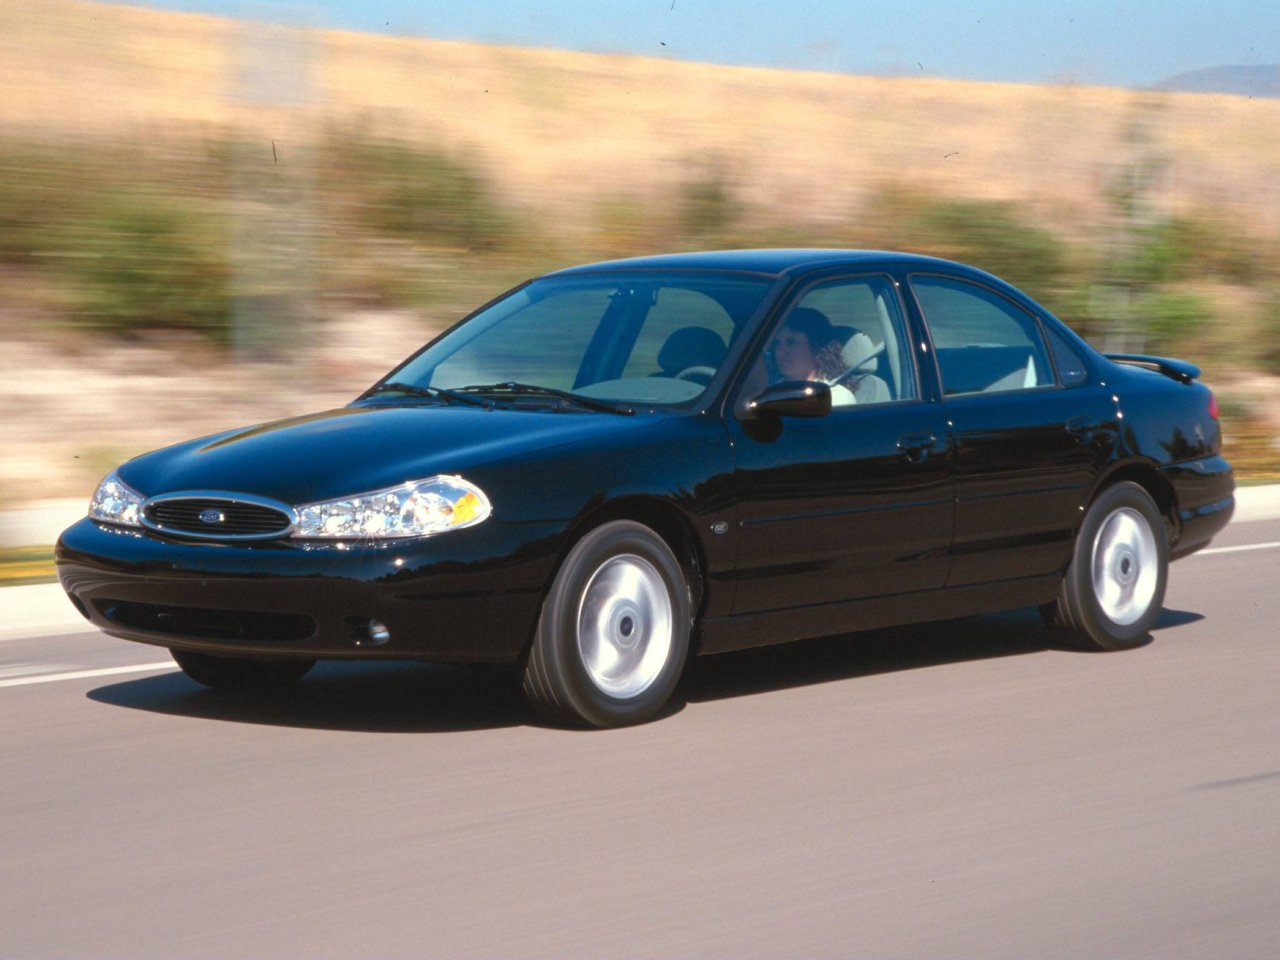 2000 Ford Contour #5